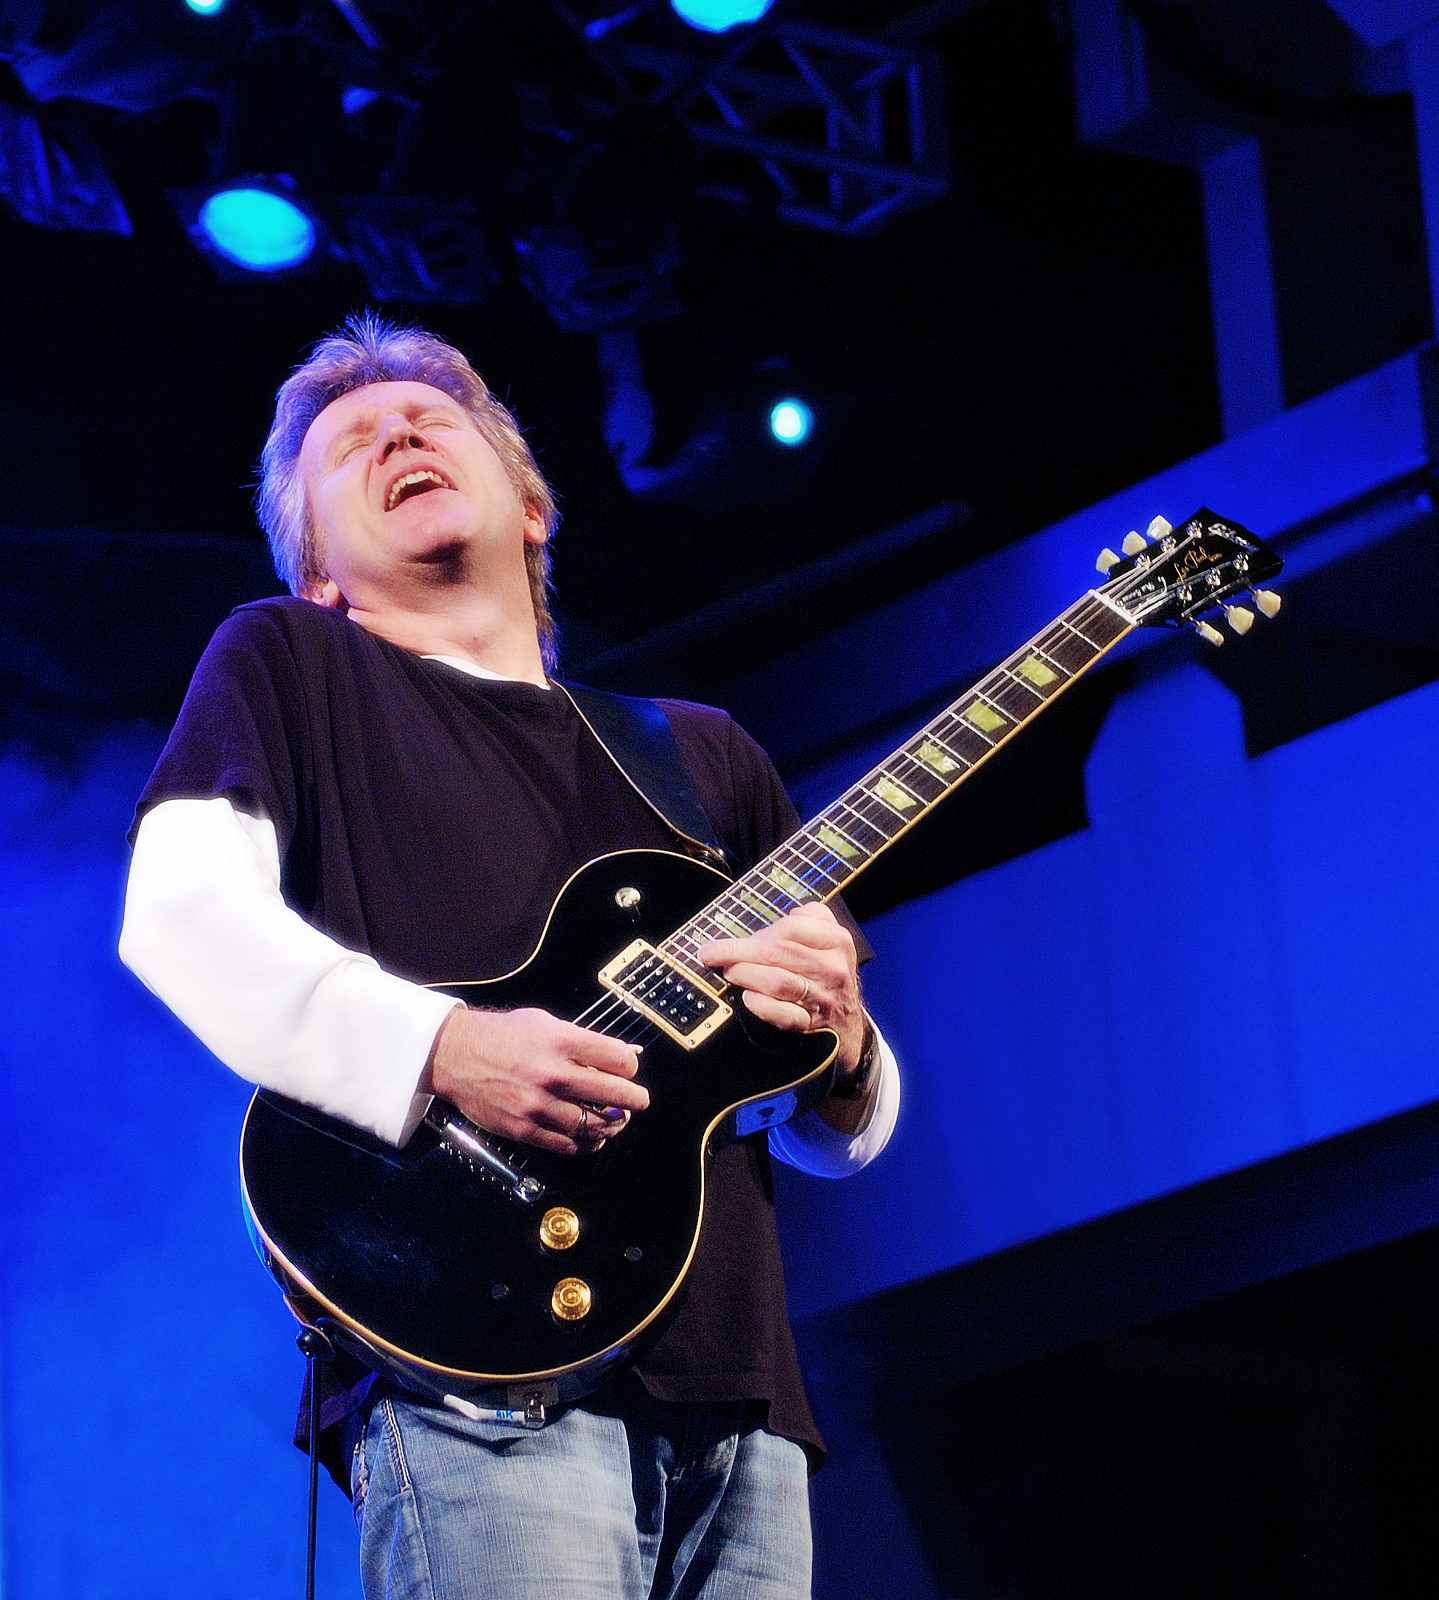 Rik Emmett to play area shows this weekend | Delaware ...